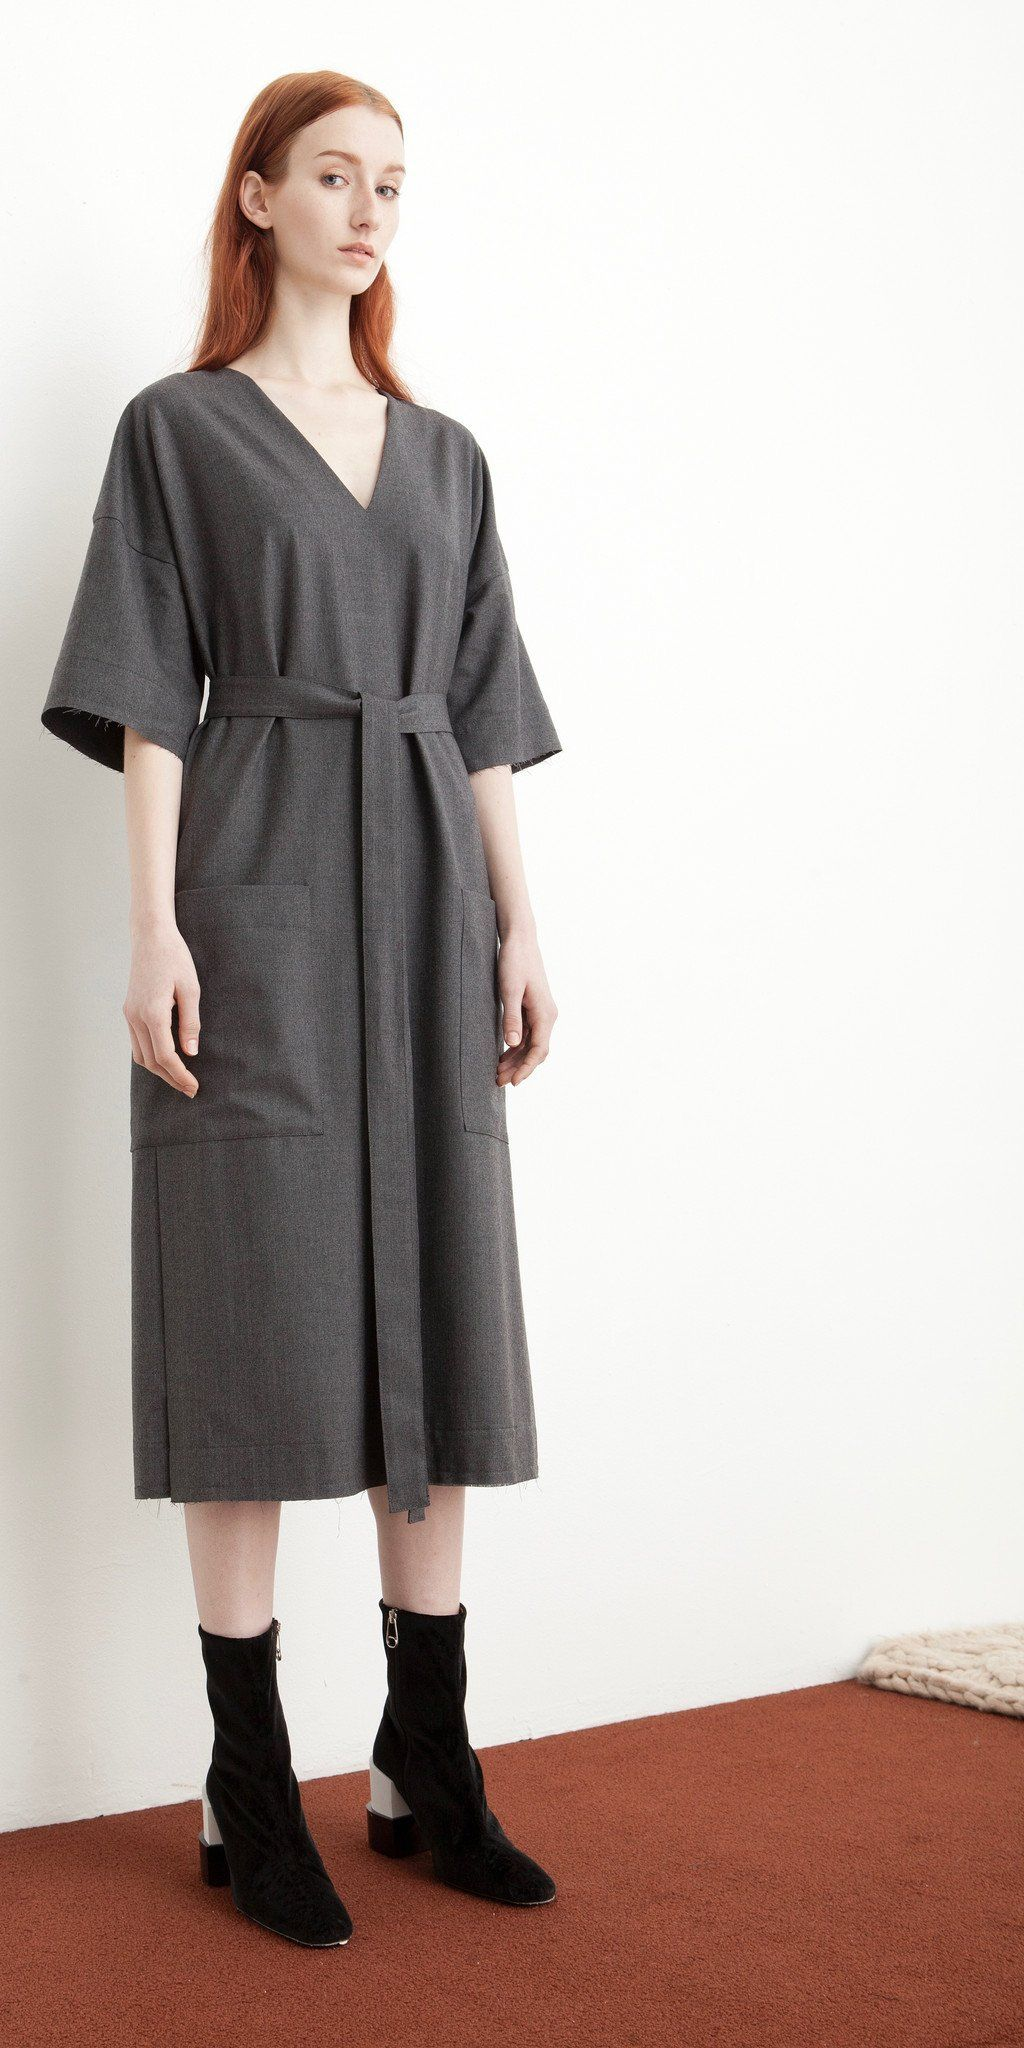 Kandan dress in granite granite minimal and korean